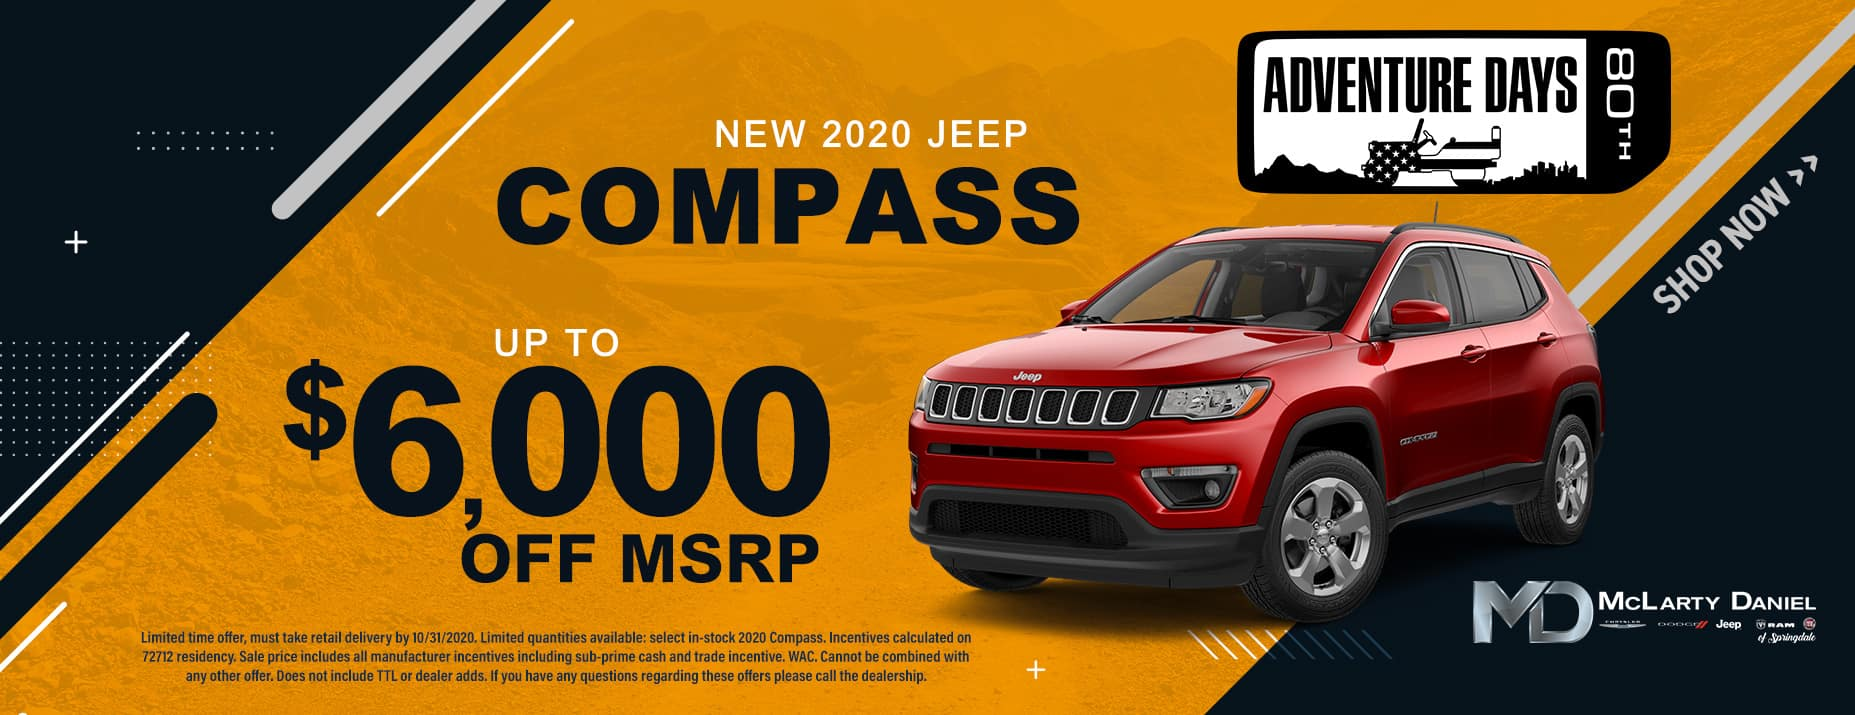 2020 JEEP COMPASS - UP TO $6,000 OFF!